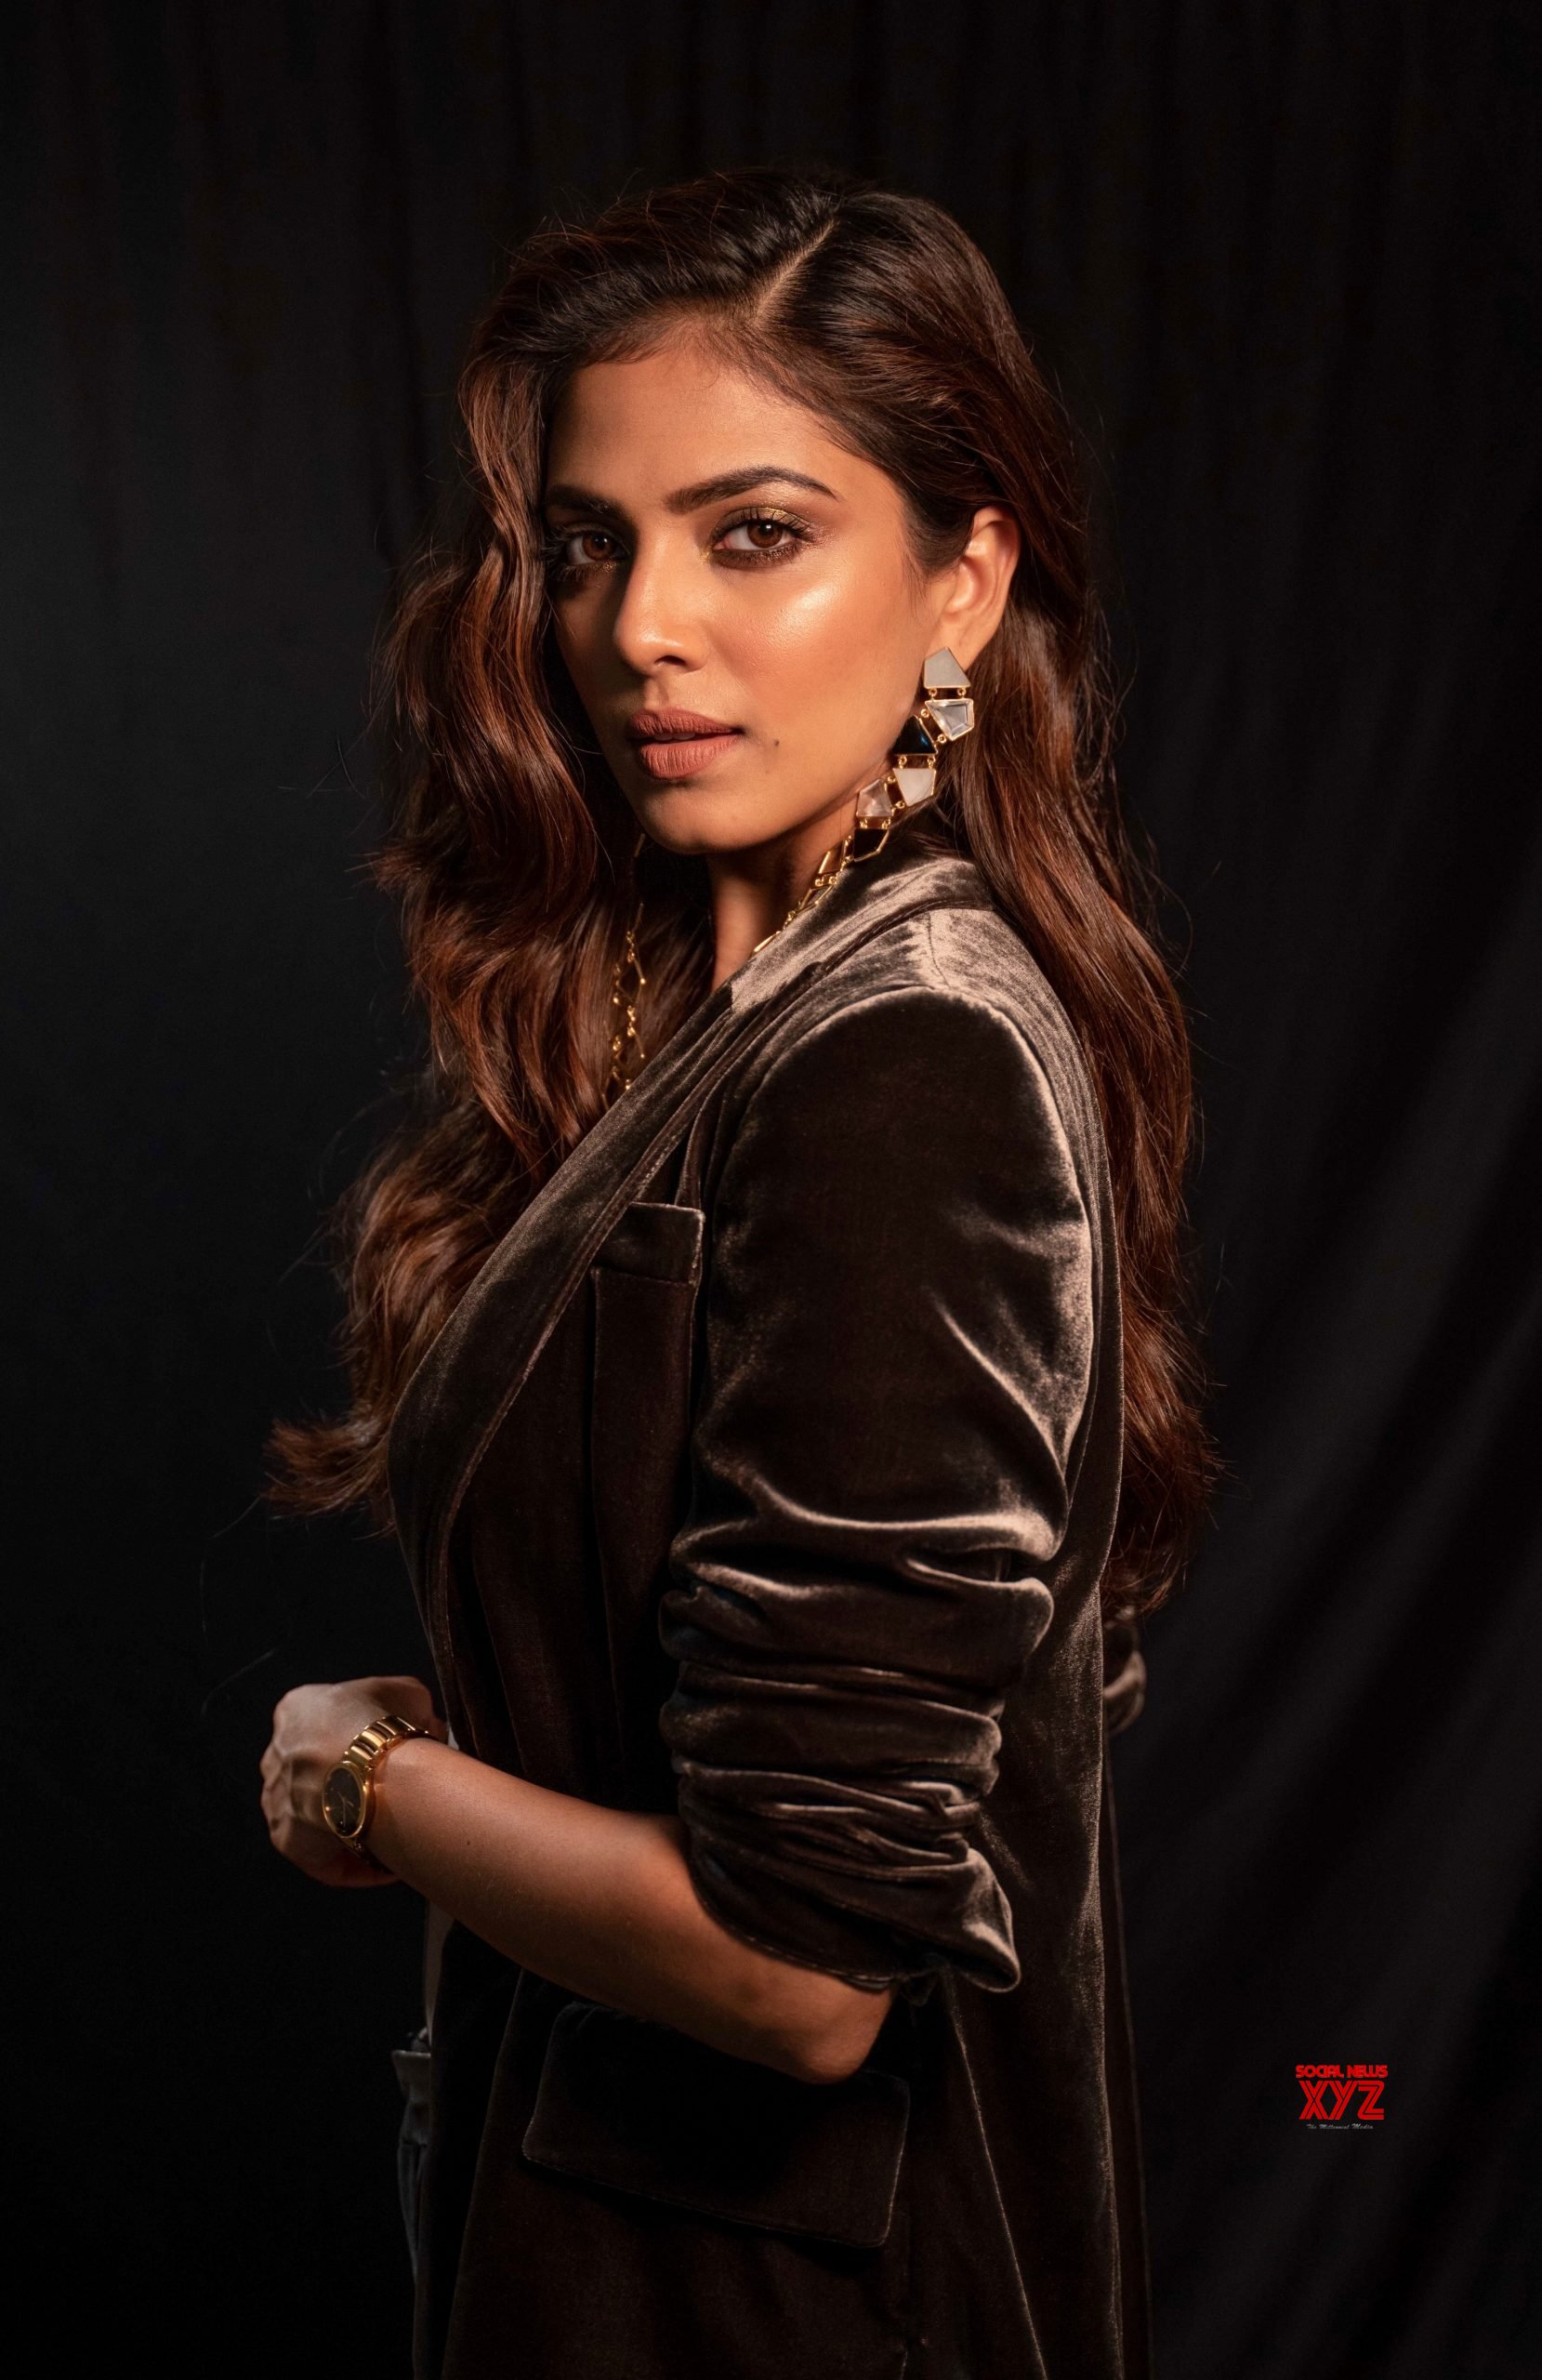 Actress Malavika Mohanan Stills Looking Like An Absolute Diva As She Attends The Filmfare Glamour And Style Awards